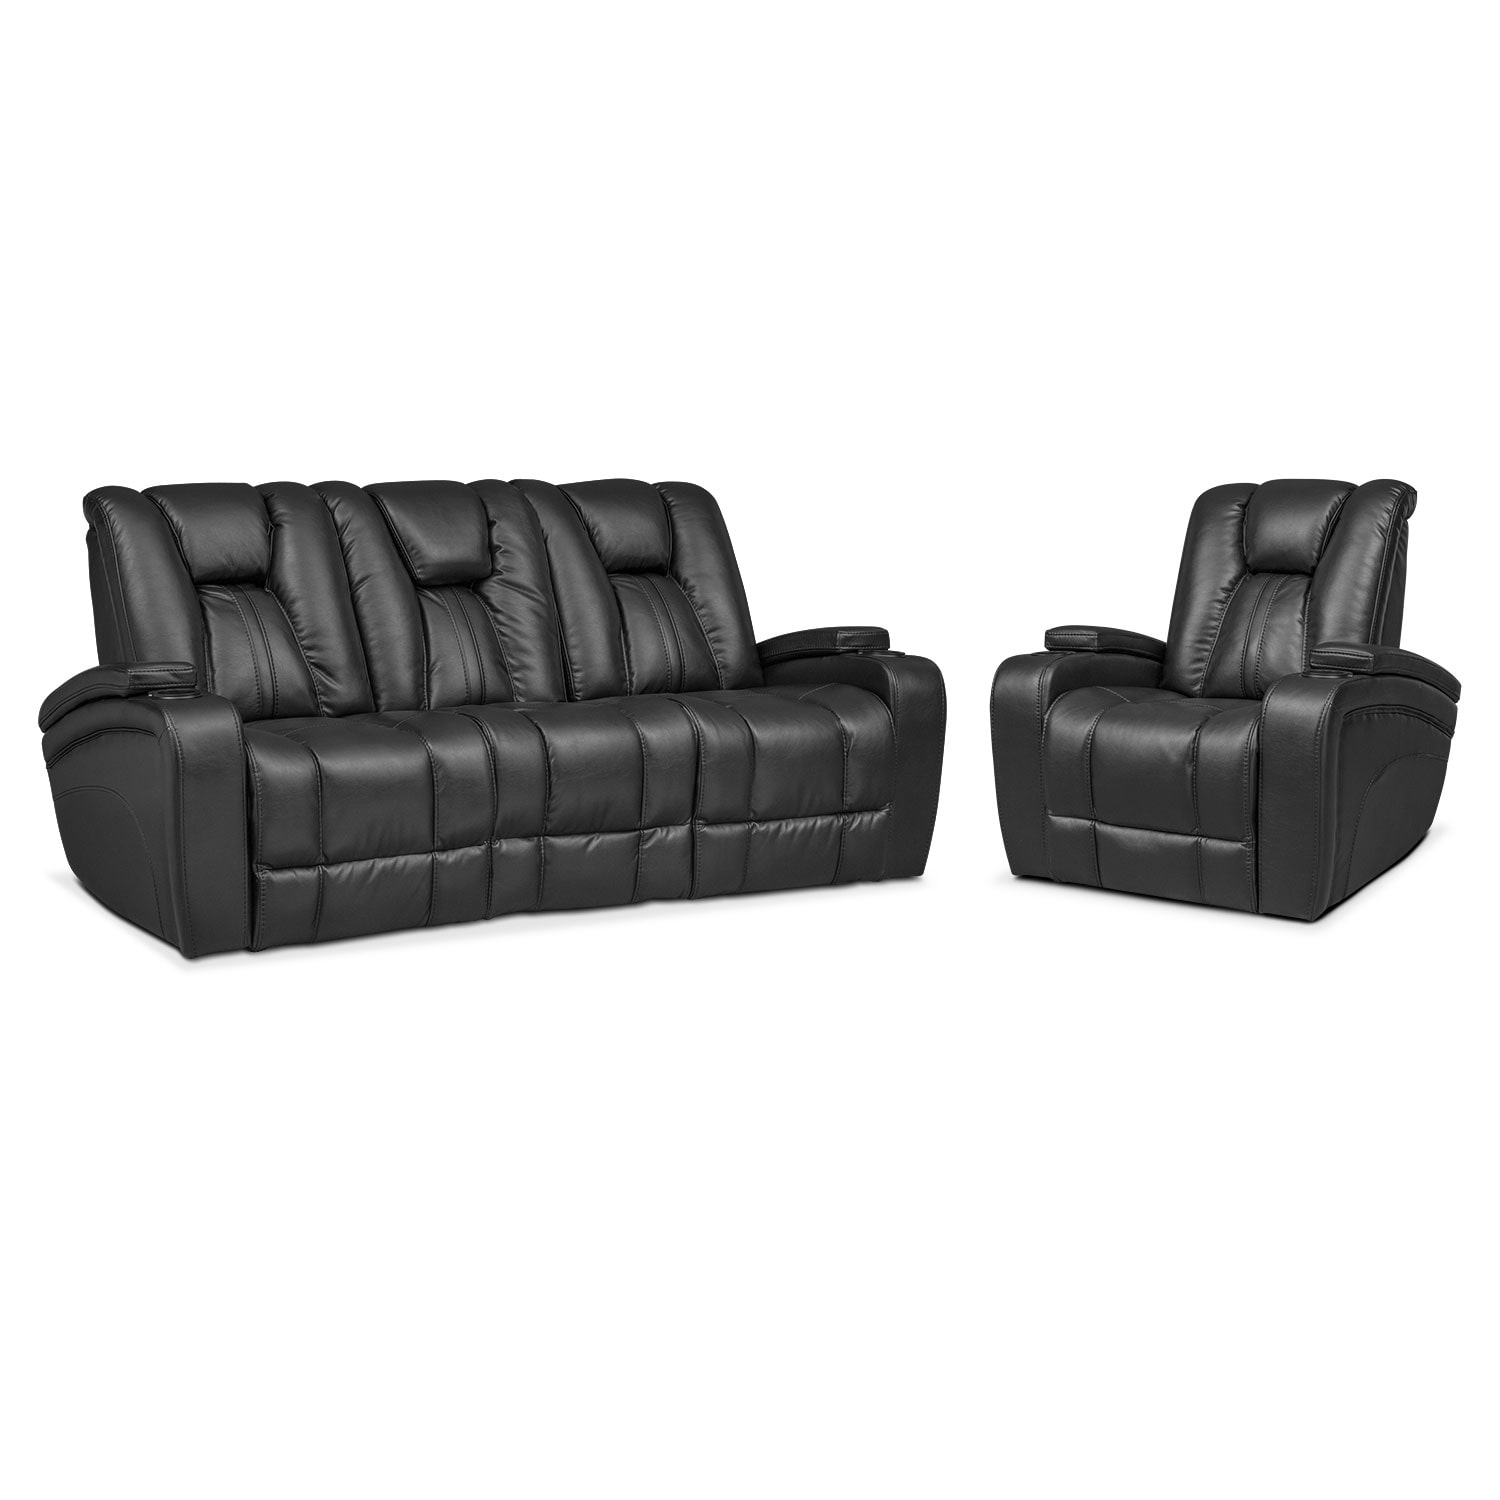 Power Reclining Chairs Pulsar Dual Power Reclining Sofa And Recliner Set Black